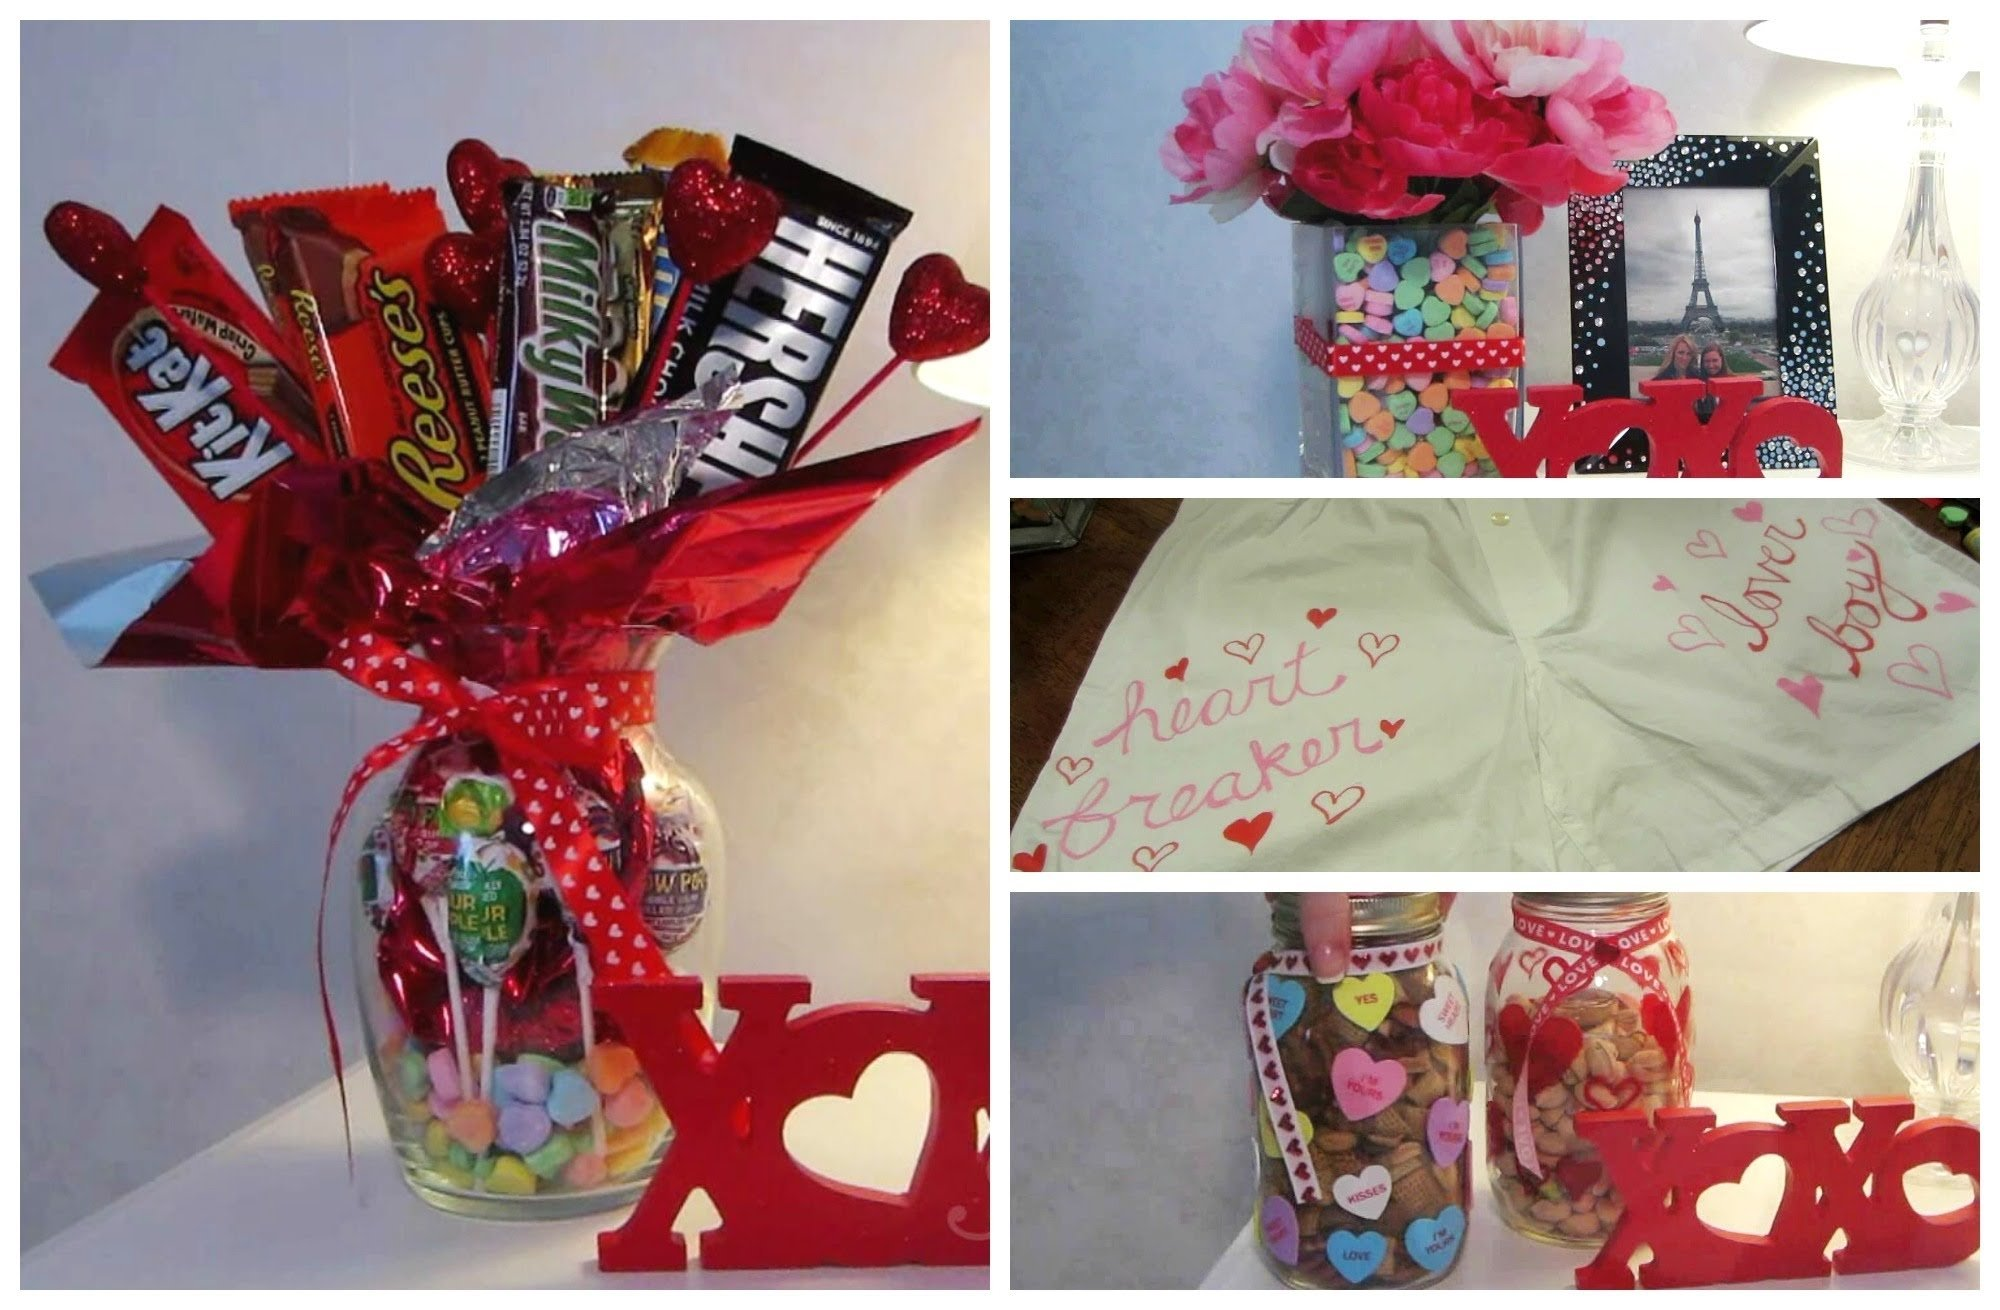 10 Spectacular Valentine Gifts For Her Ideas cute valentine diy gift ideas youtube 1